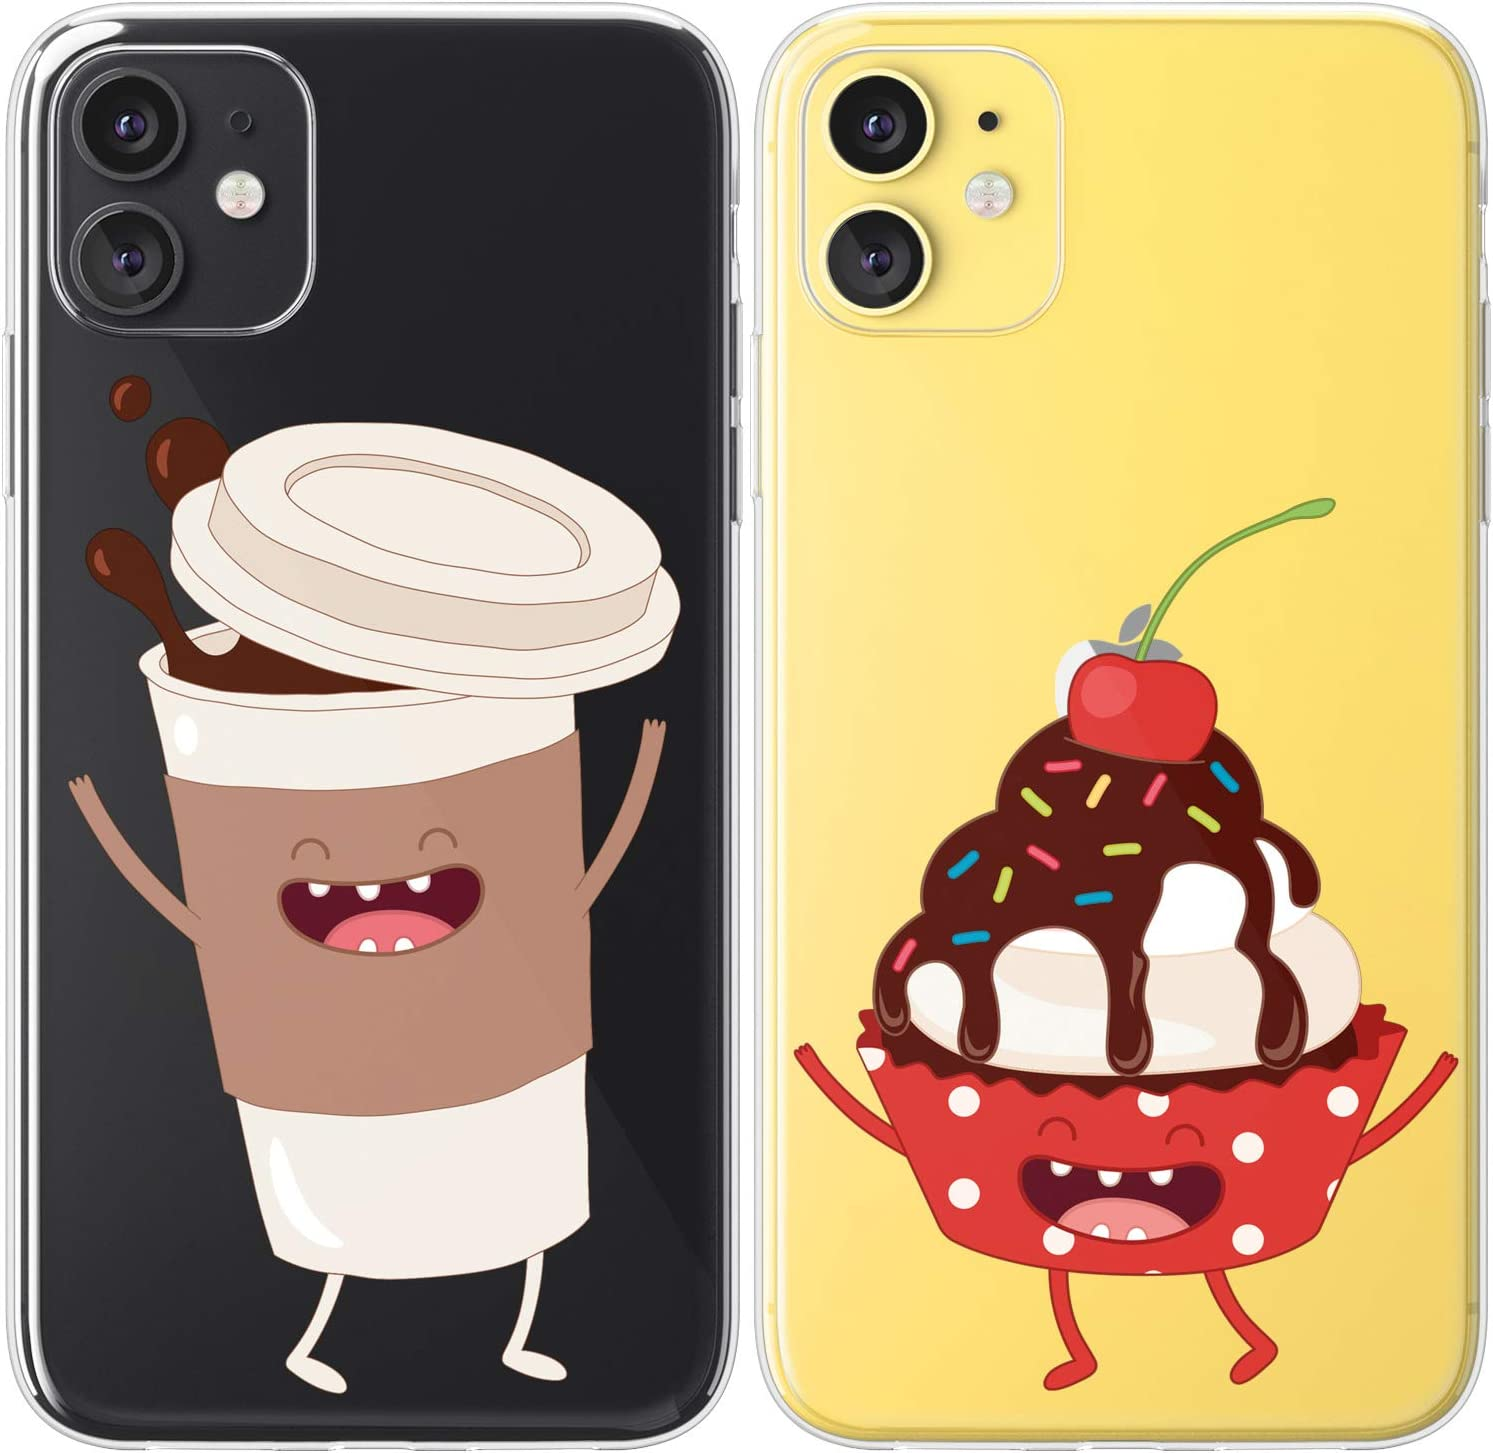 Mertak TPU Couple Cases Compatible with iPhone 12 Pro Max Mini 11 SE Xs Xr 8 Plus 7 6s Chocolate Relationship Silicone Lightweight Cute Cupcake Coffee Soulmate Design Girlfriend Kawaii Clear Food